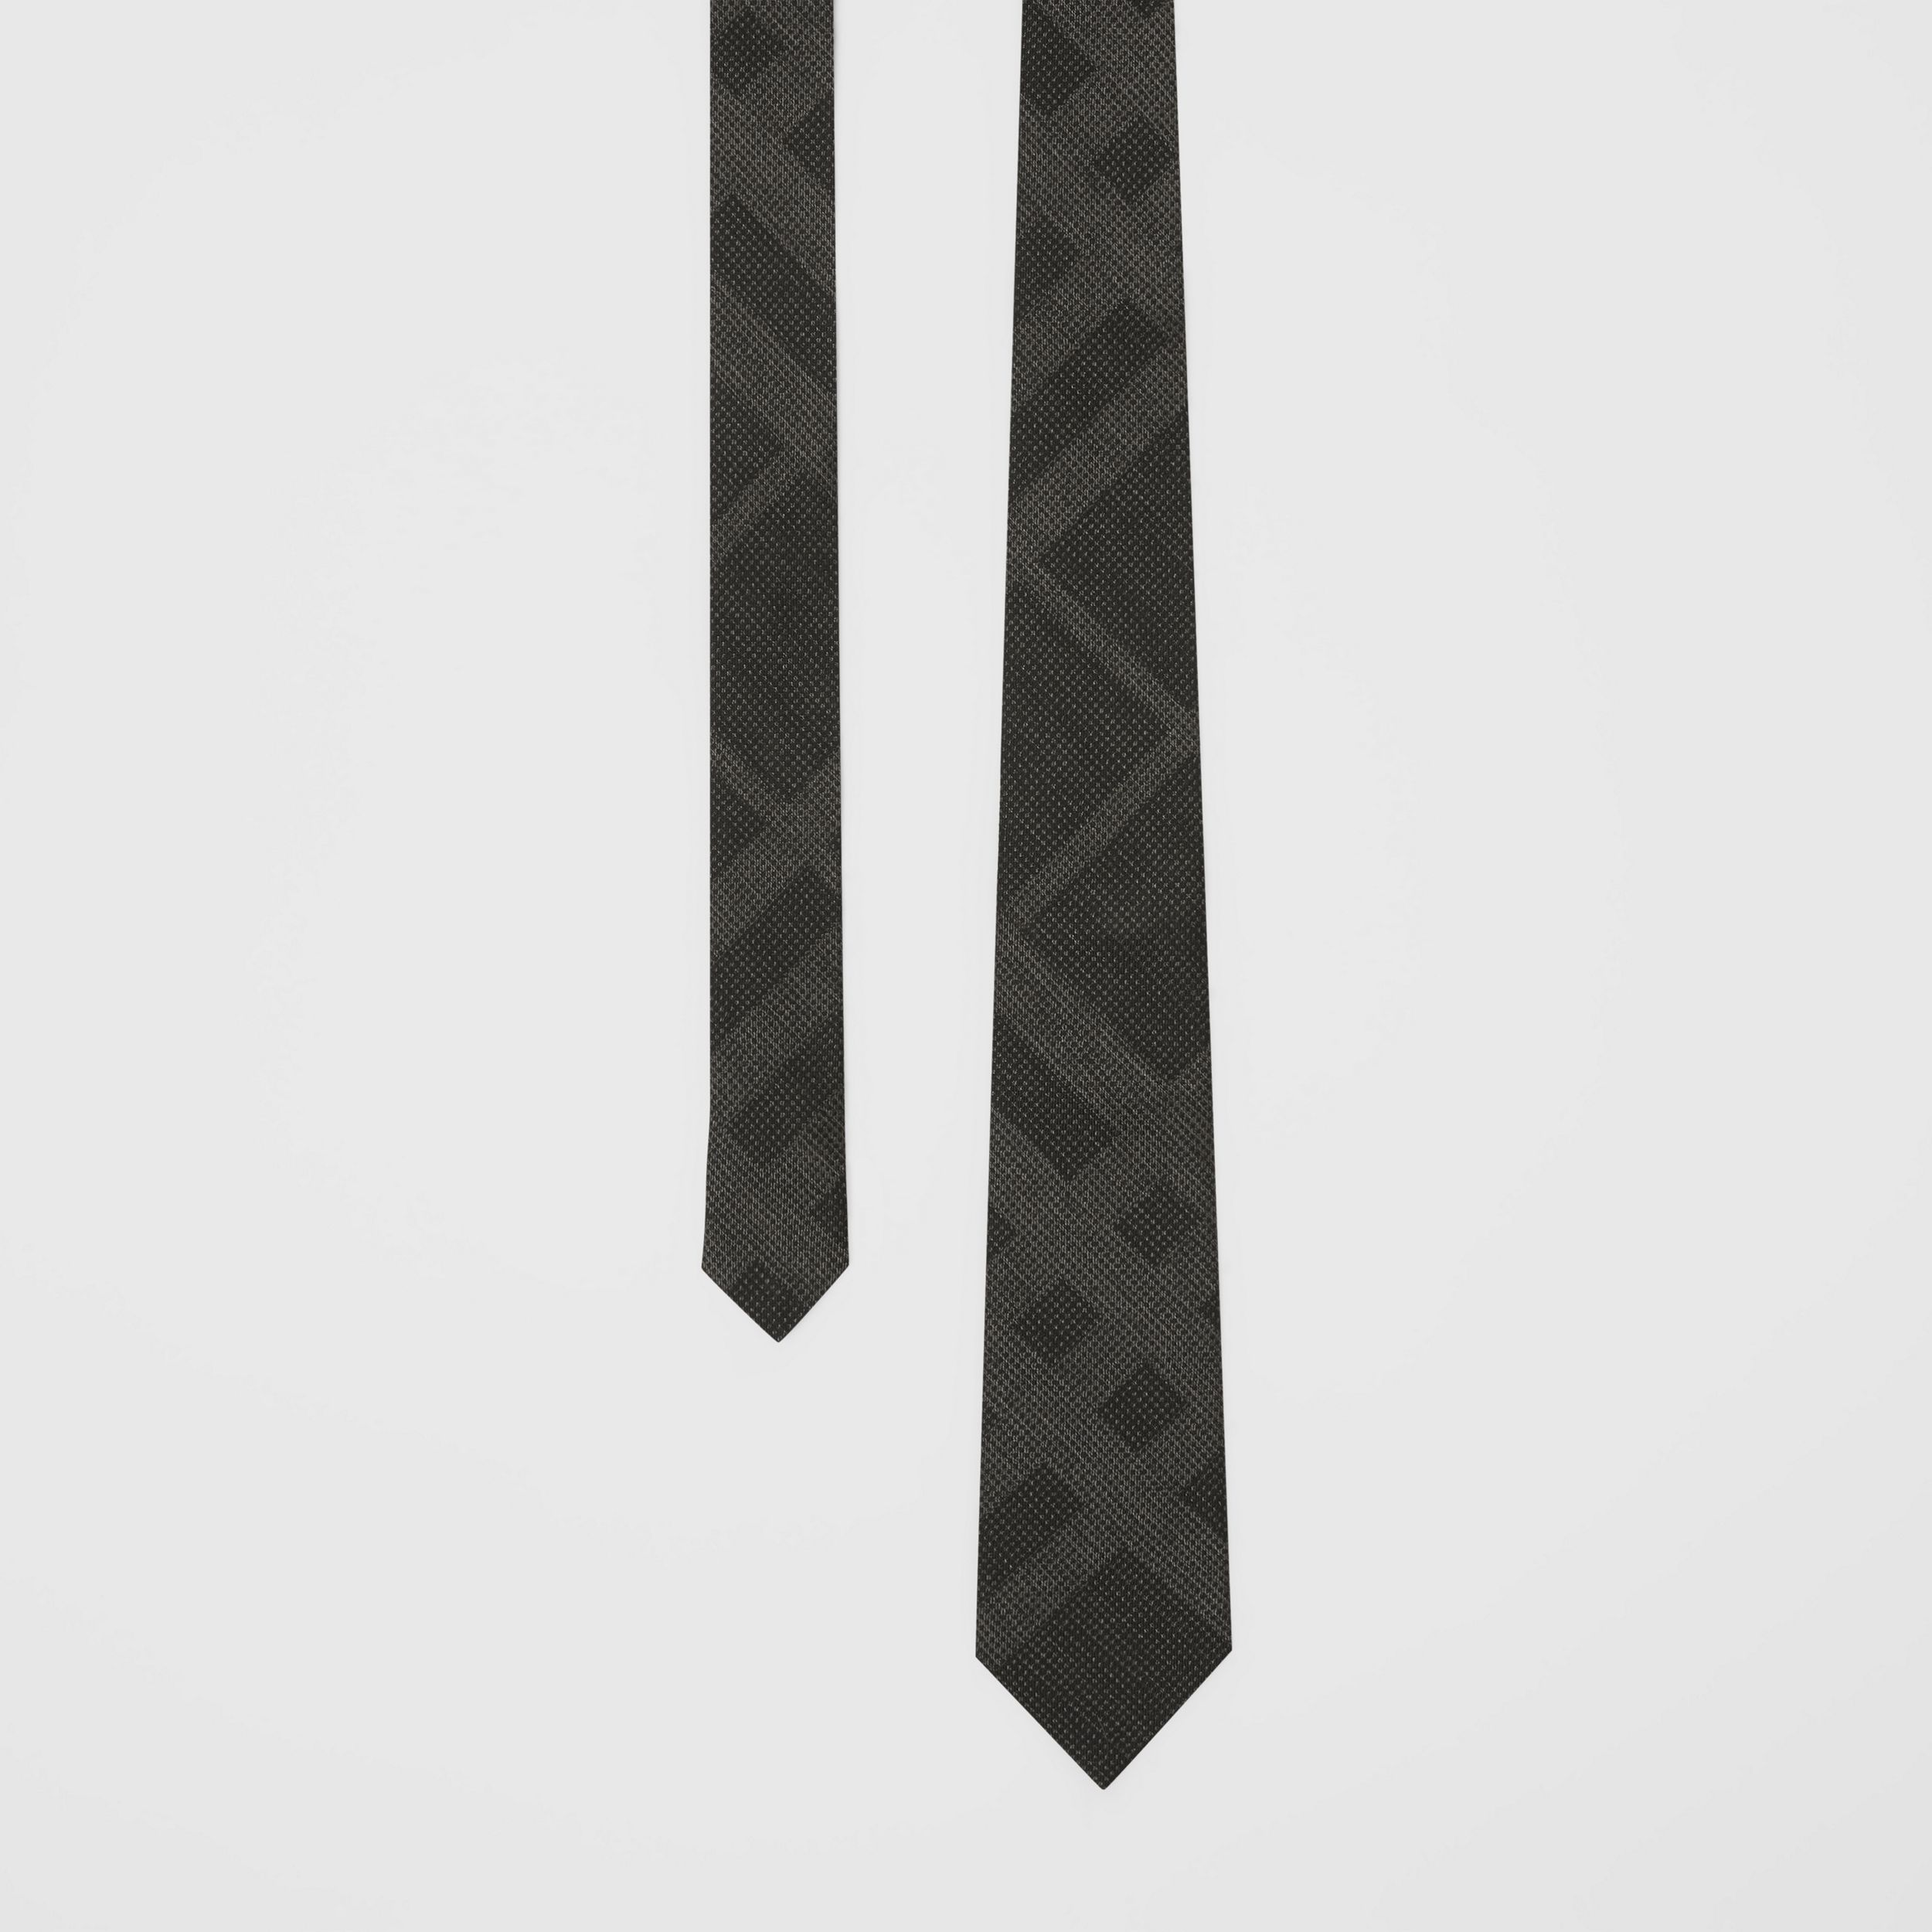 Classic Cut Check Silk Tie in Dark Grey Melange - Men | Burberry Hong Kong S.A.R. - 1